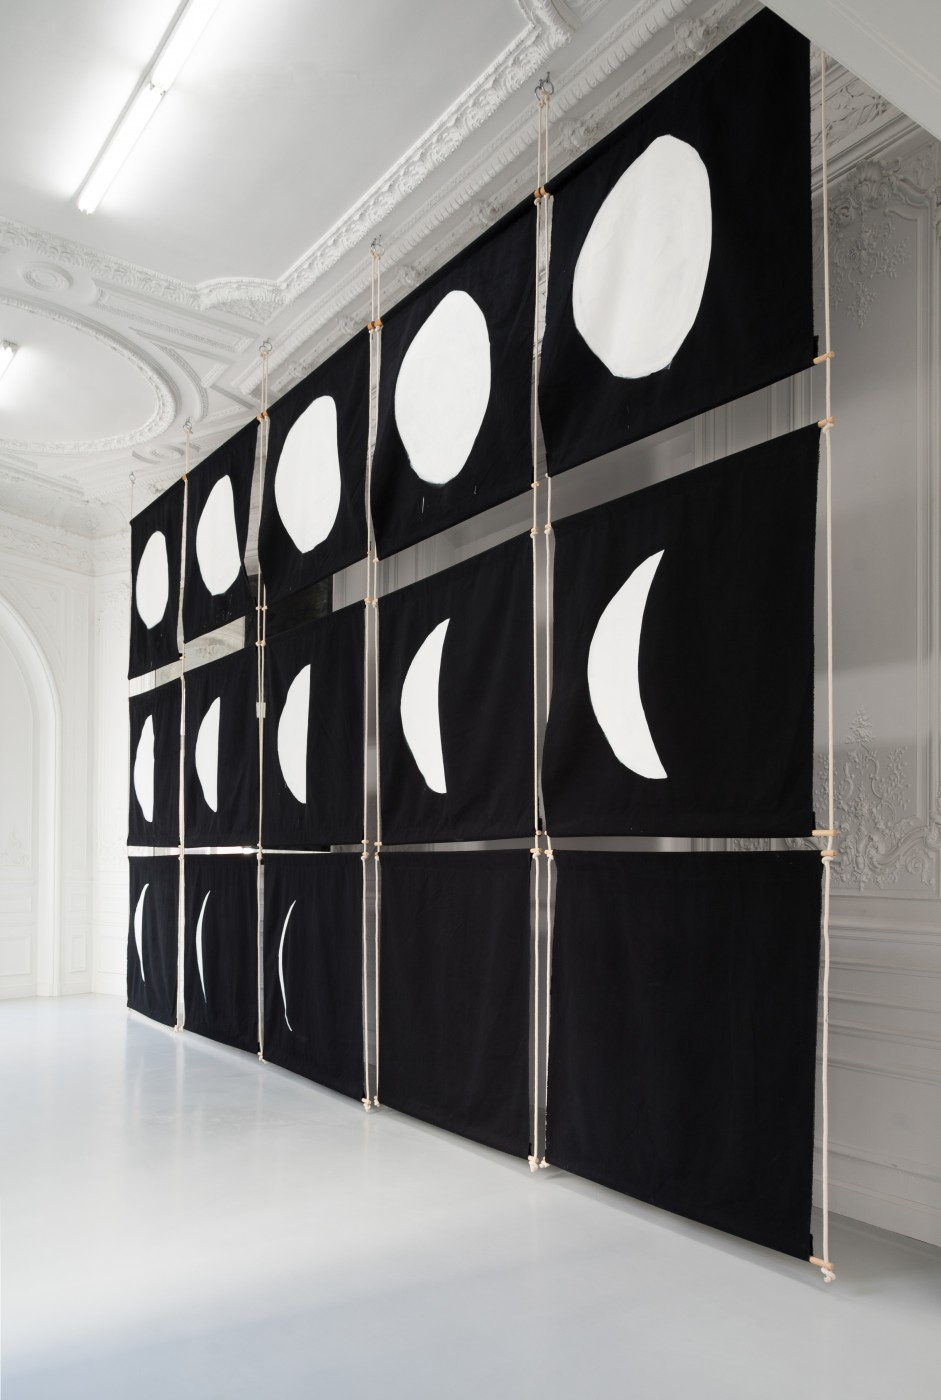 MÉLANIE MATRANGRA  Calendrier</I>, 2018 Thebes fabric, oil paint, rope, wood, steel Approx. 460 x 765 cm / 181.1 x 301.2 in